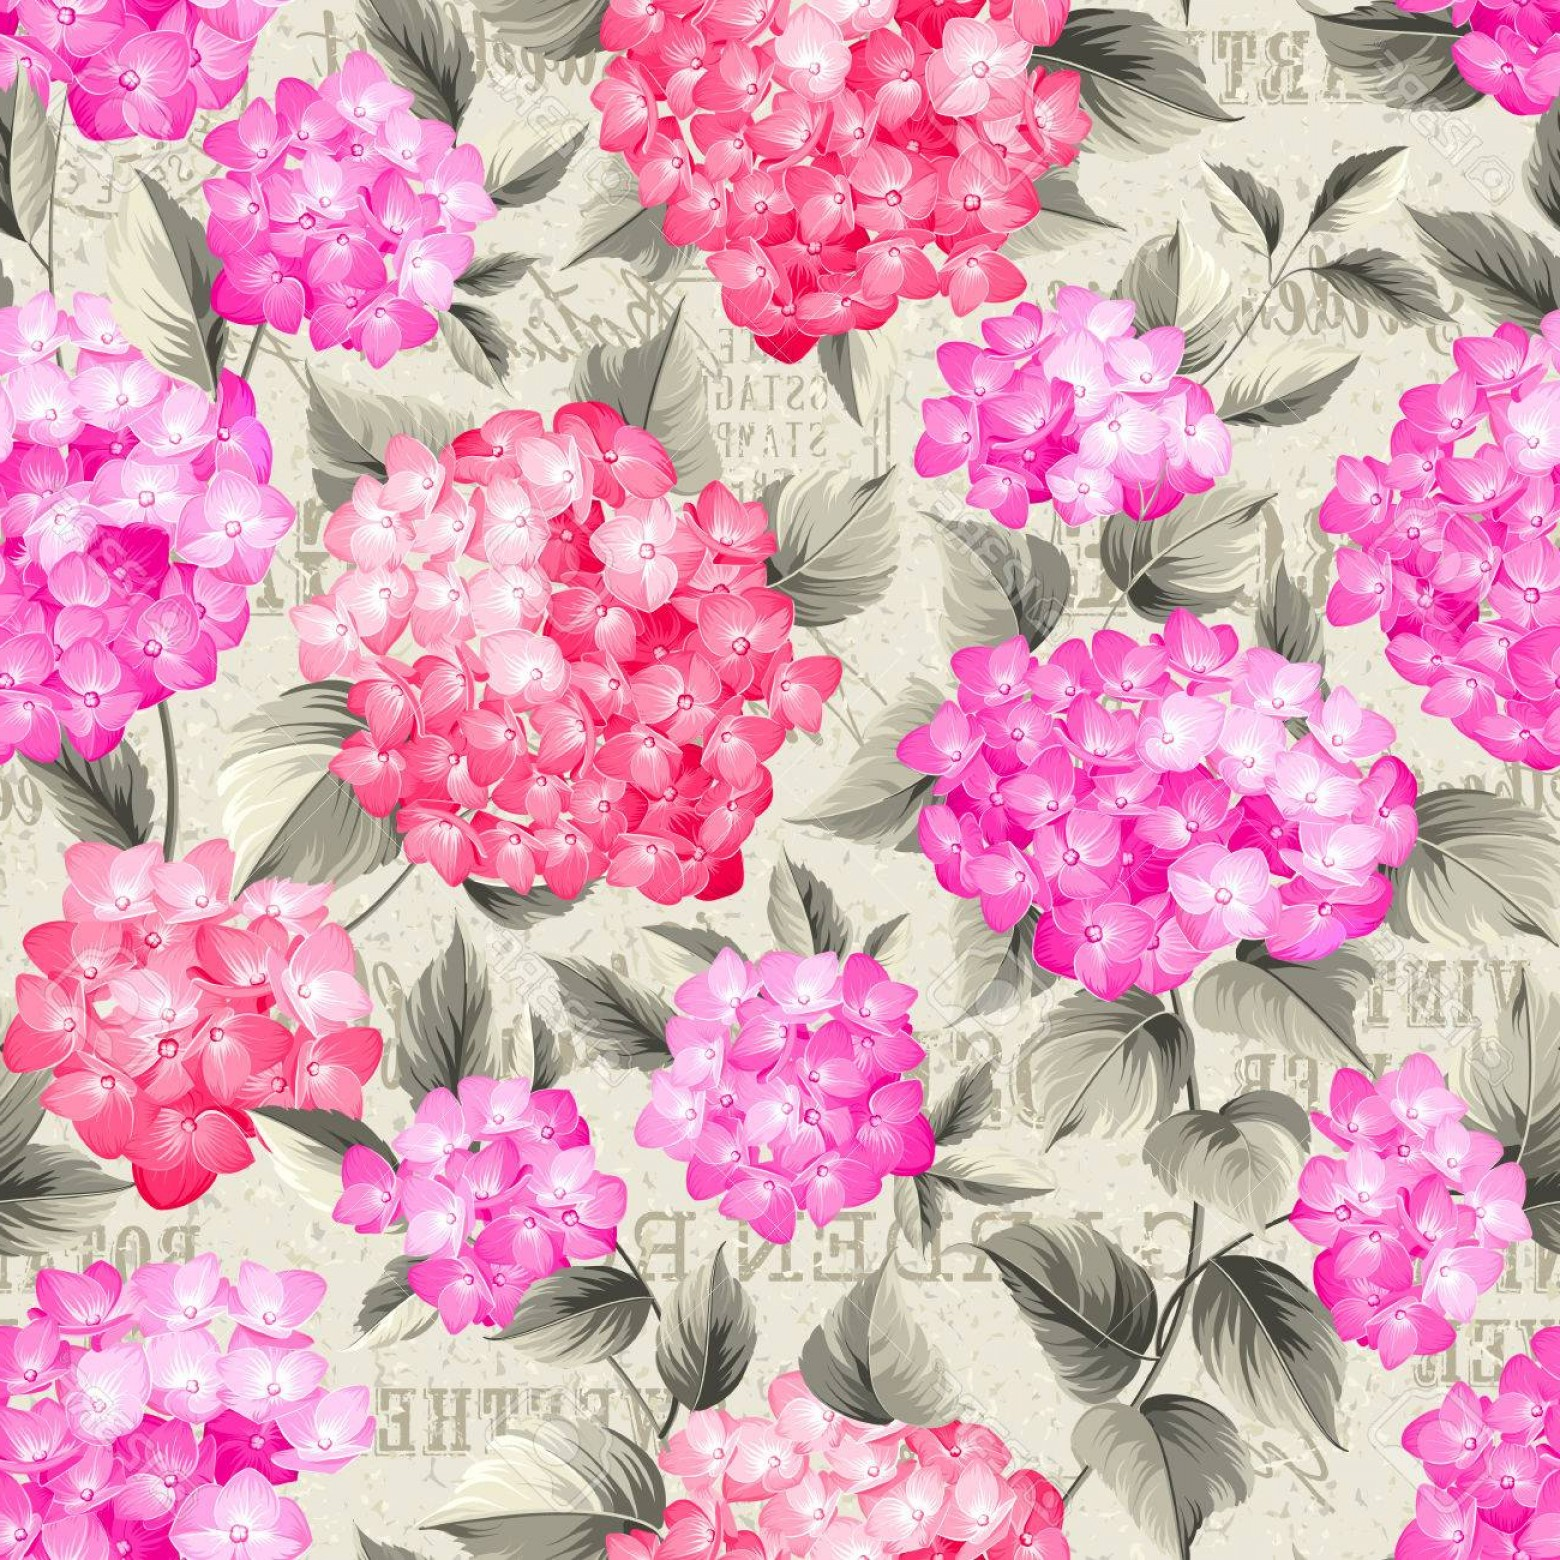 Hydrangea Vector Graphics: Photostock Vector Purple Flower Hydrangea On Seamless Background Mop Head Hydrangea Flower Pattern Beautiful Red Flowe